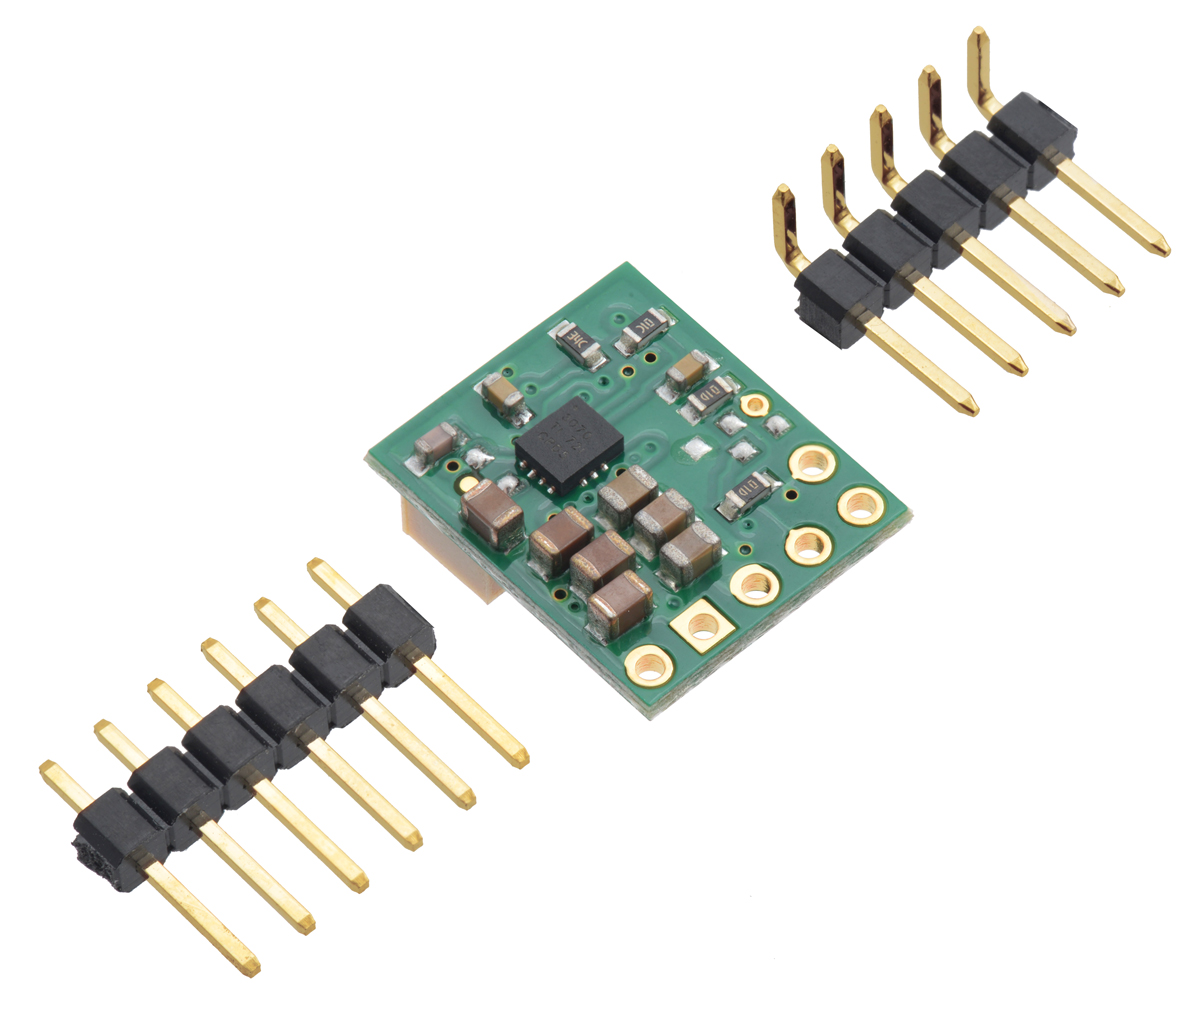 Pololu 25 9v Fine Adjust Step Up Down Voltage Regulator W Charger Circuit With High Low Cutoff Electronic Projects Included Hardware